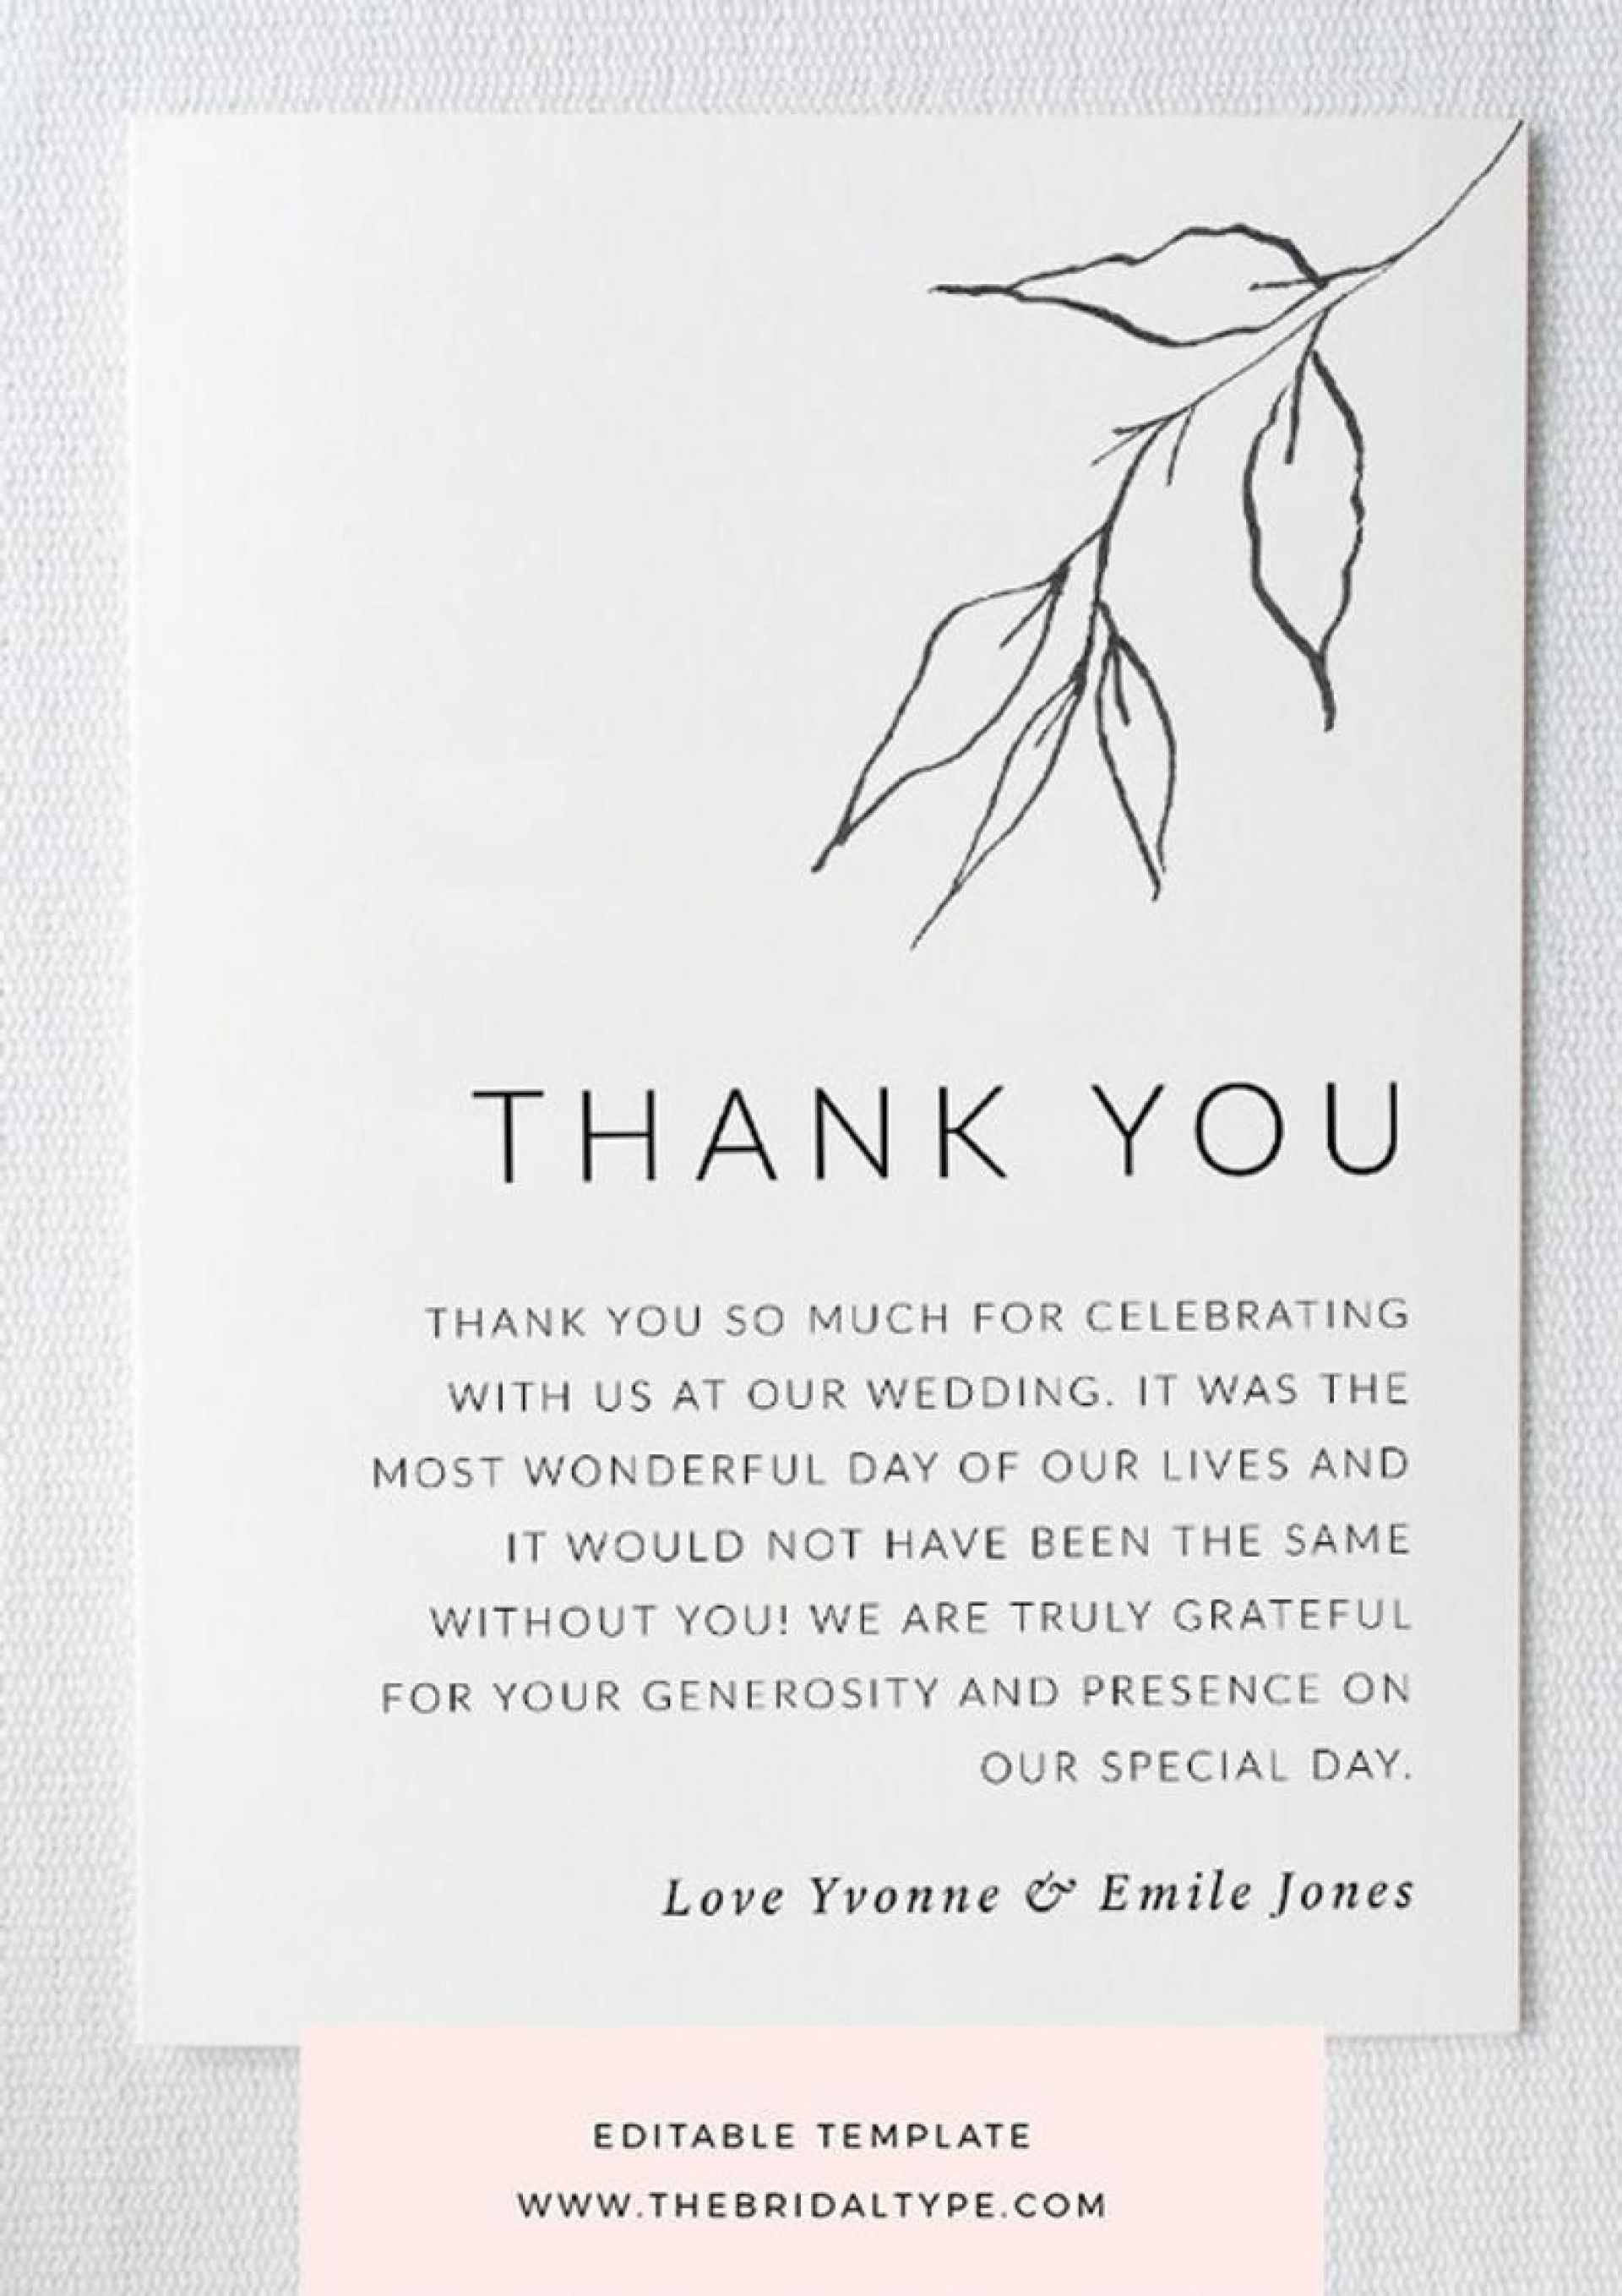 000 Frightening Thank You Note Template For Money Highest Quality  Card Wording Wedding Example Donation GraduationFull